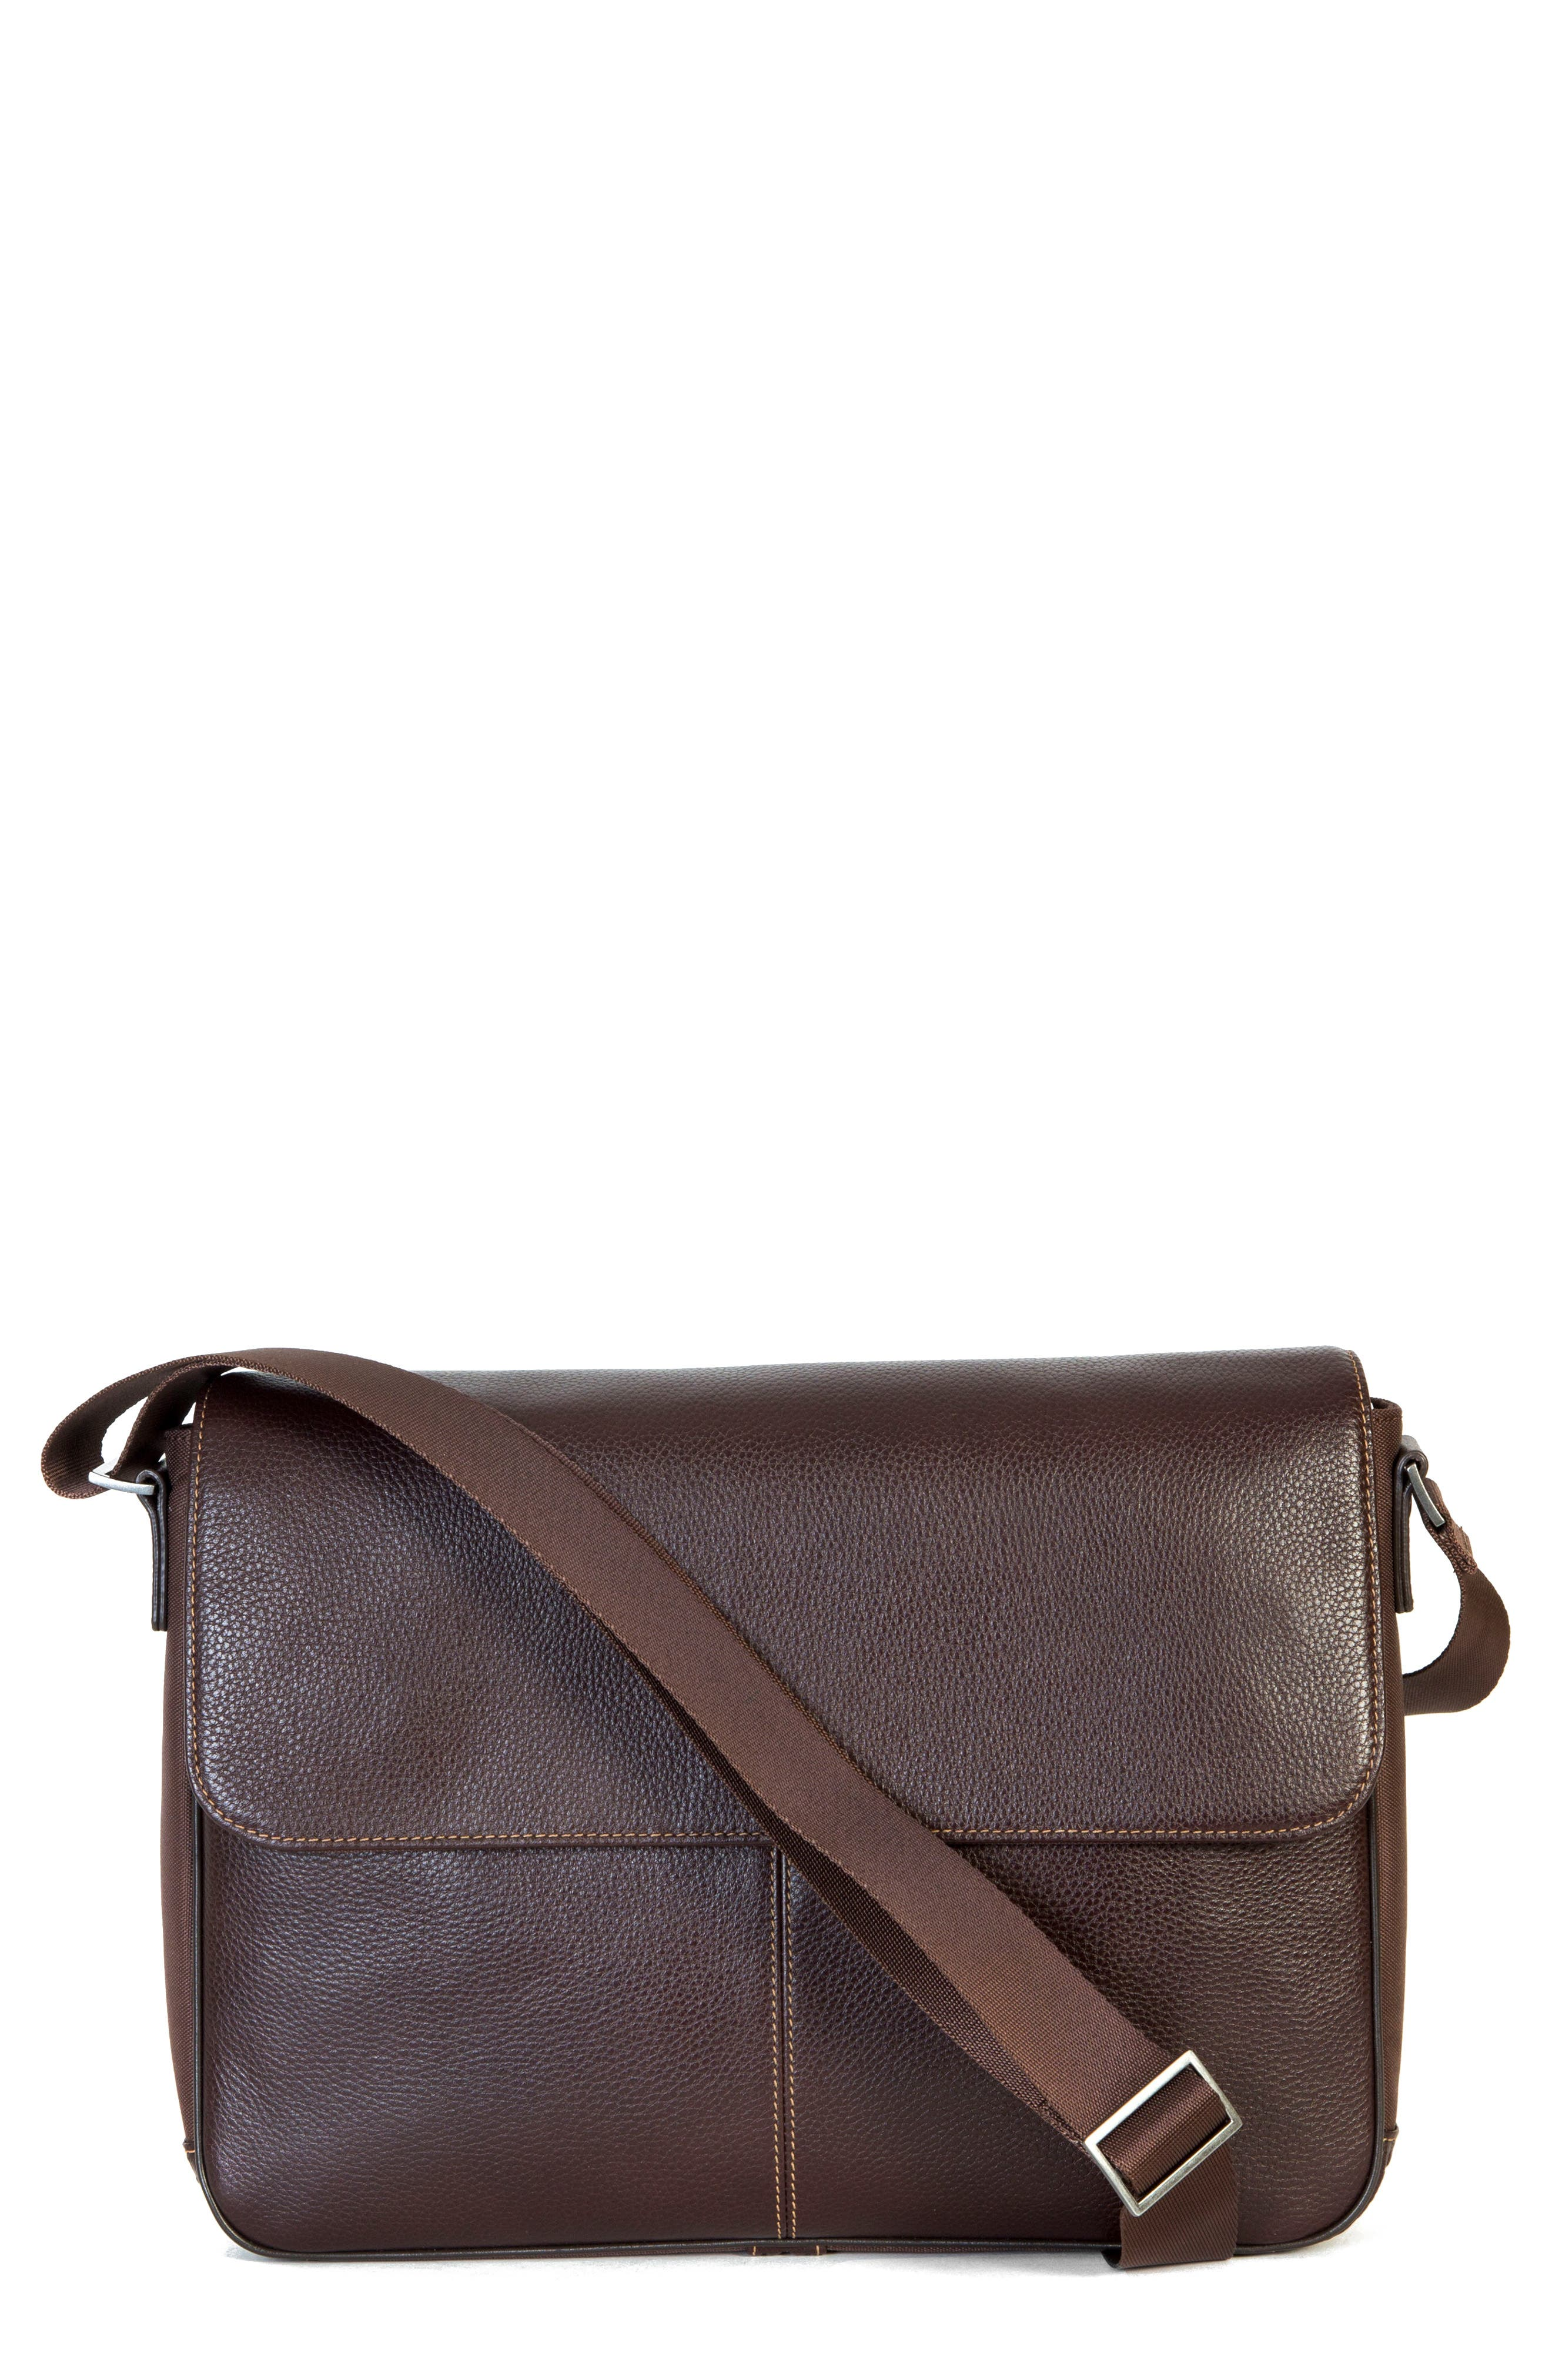 Tyler Leather Messenger Bag,                             Main thumbnail 1, color,                             Coffee